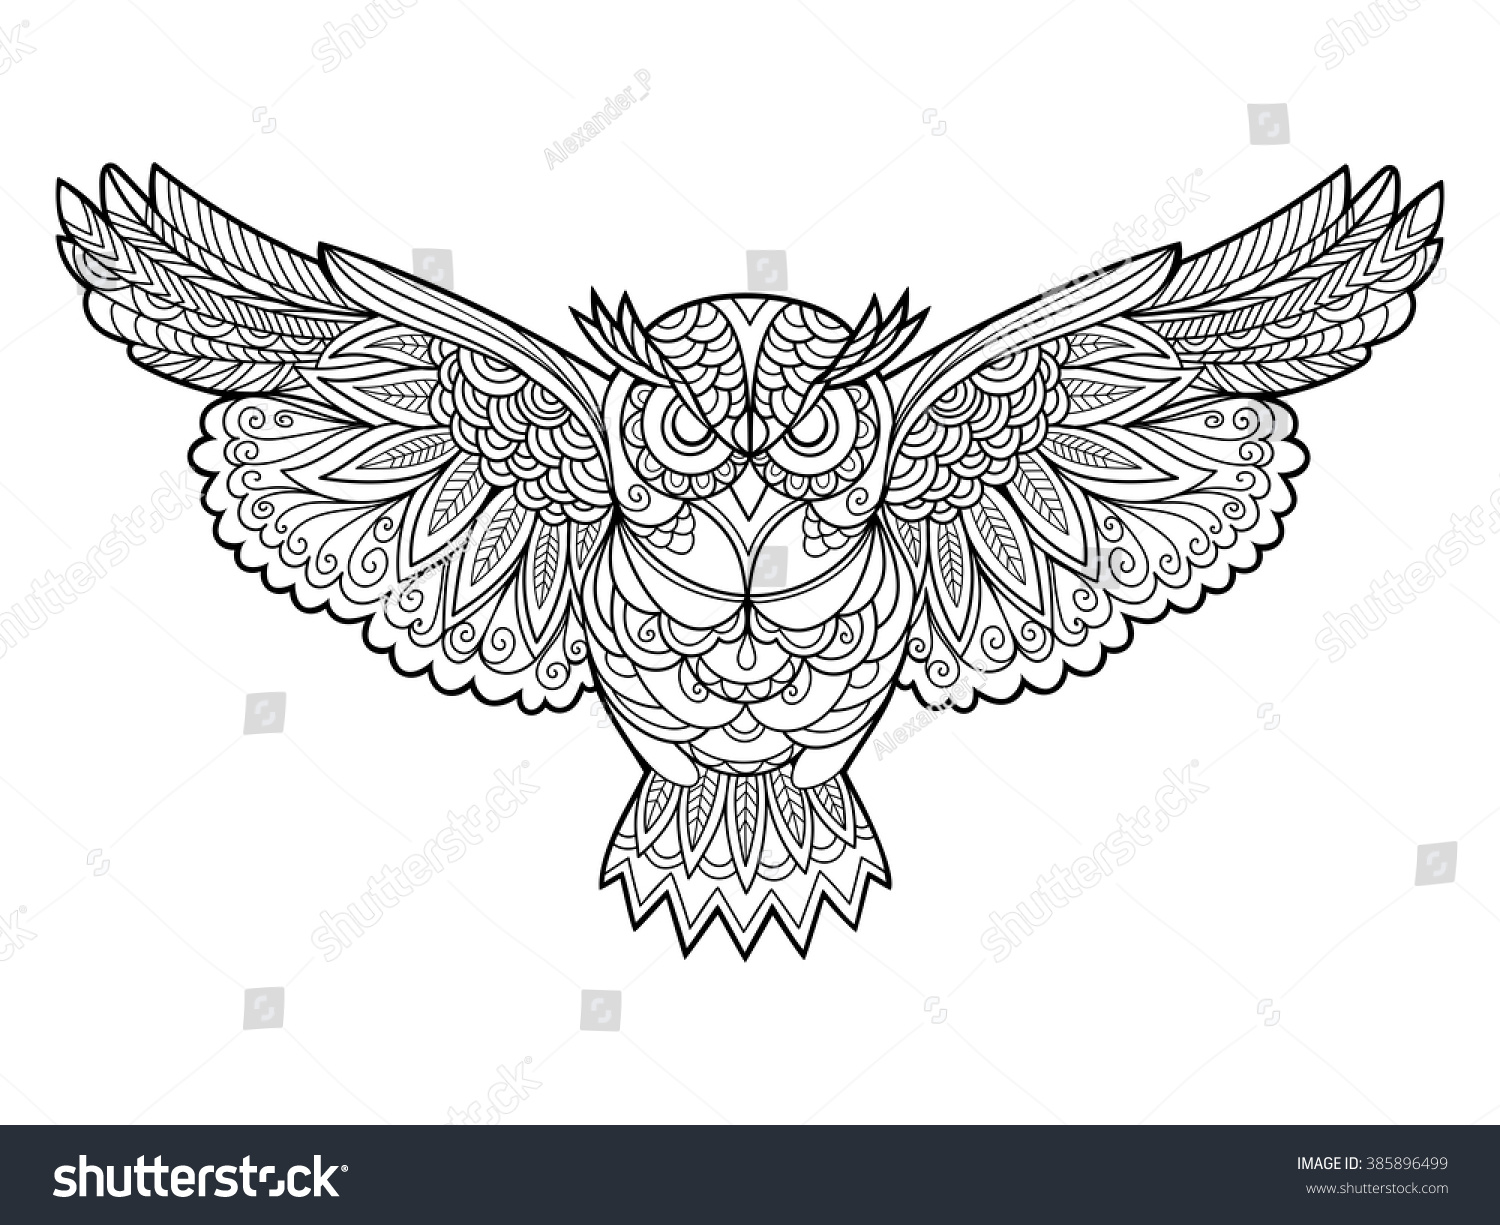 anti stress coloring pages owls - photo#27